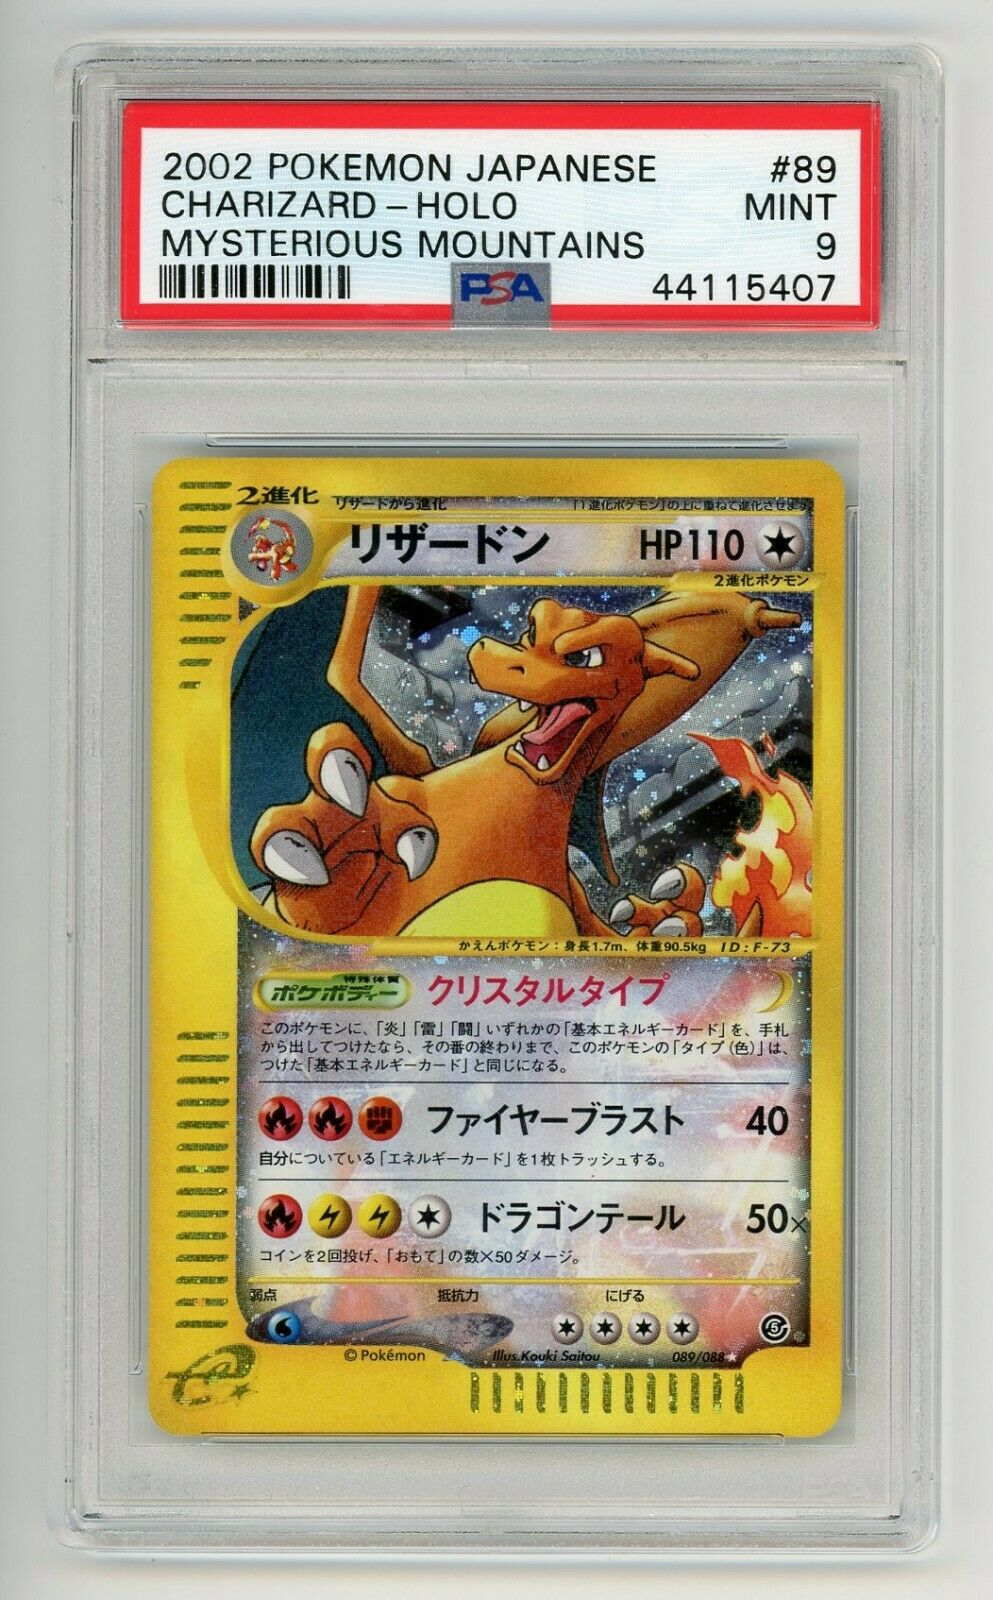 PSA 9 POKEMON JAPANESE CRYSTAL CHARIZARD 089 CARD 2002 1ST ED ESERIES SKYRIDGE